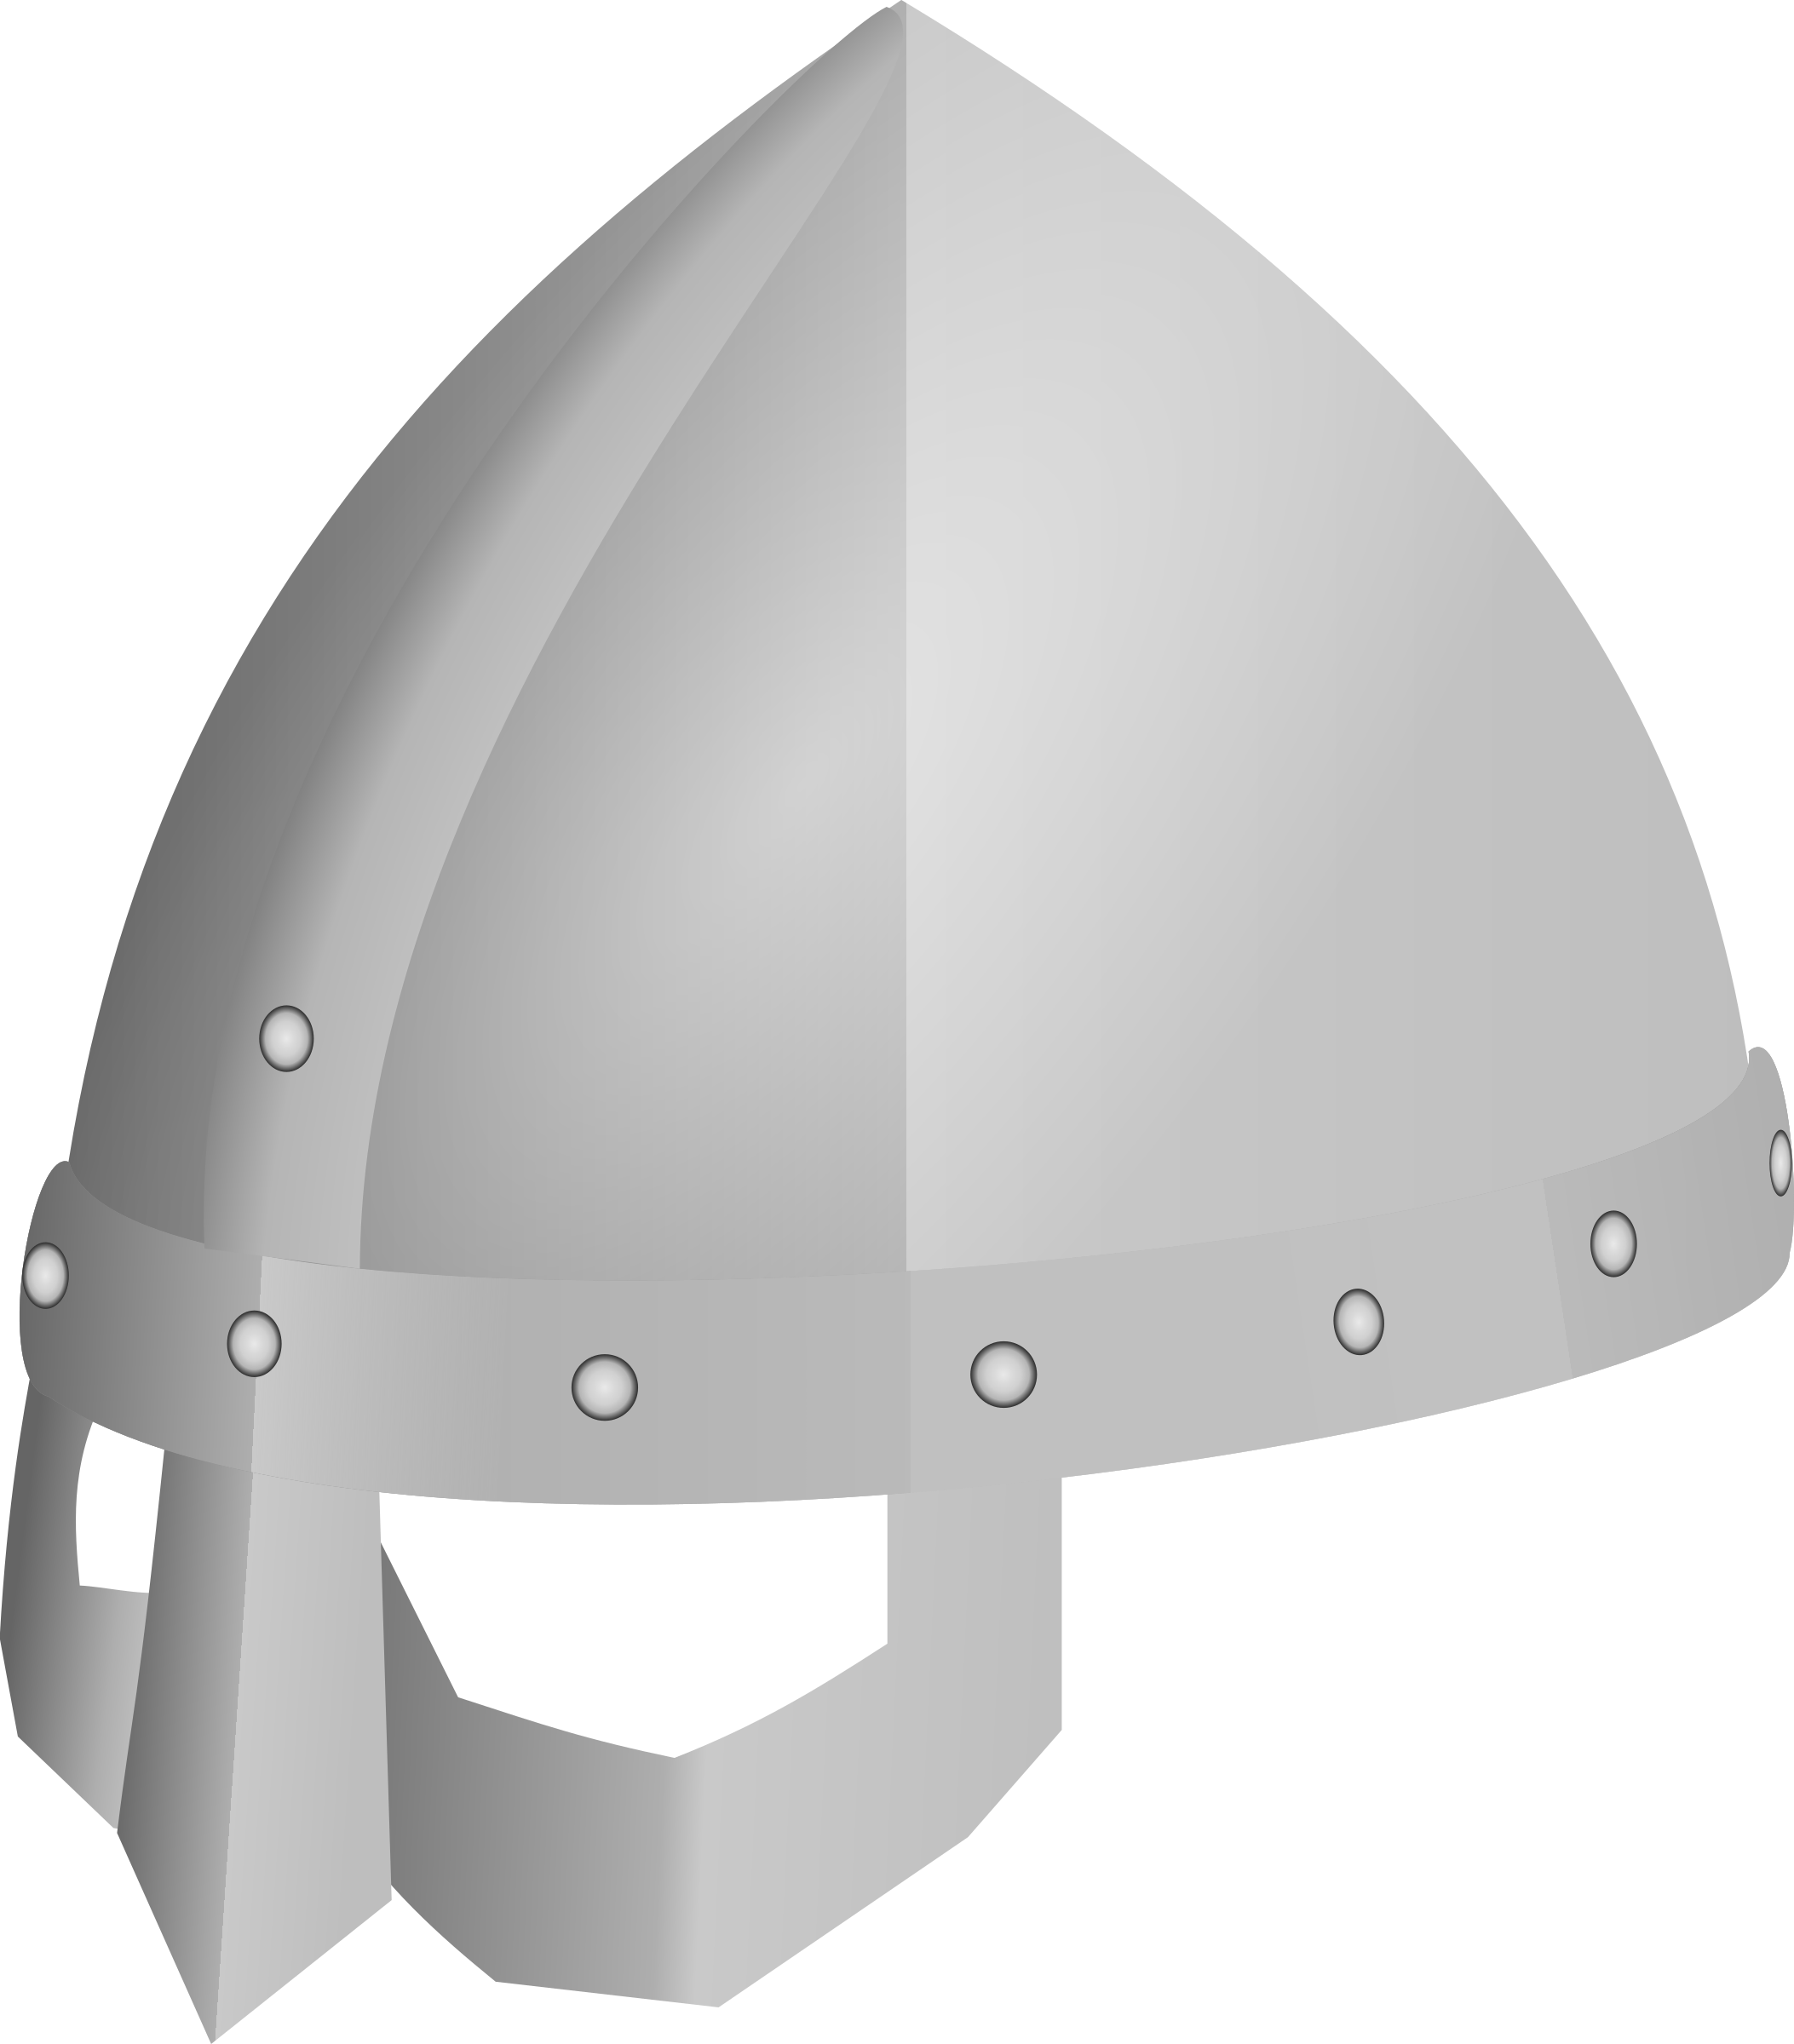 Viking Spectacle helmet by Gribba